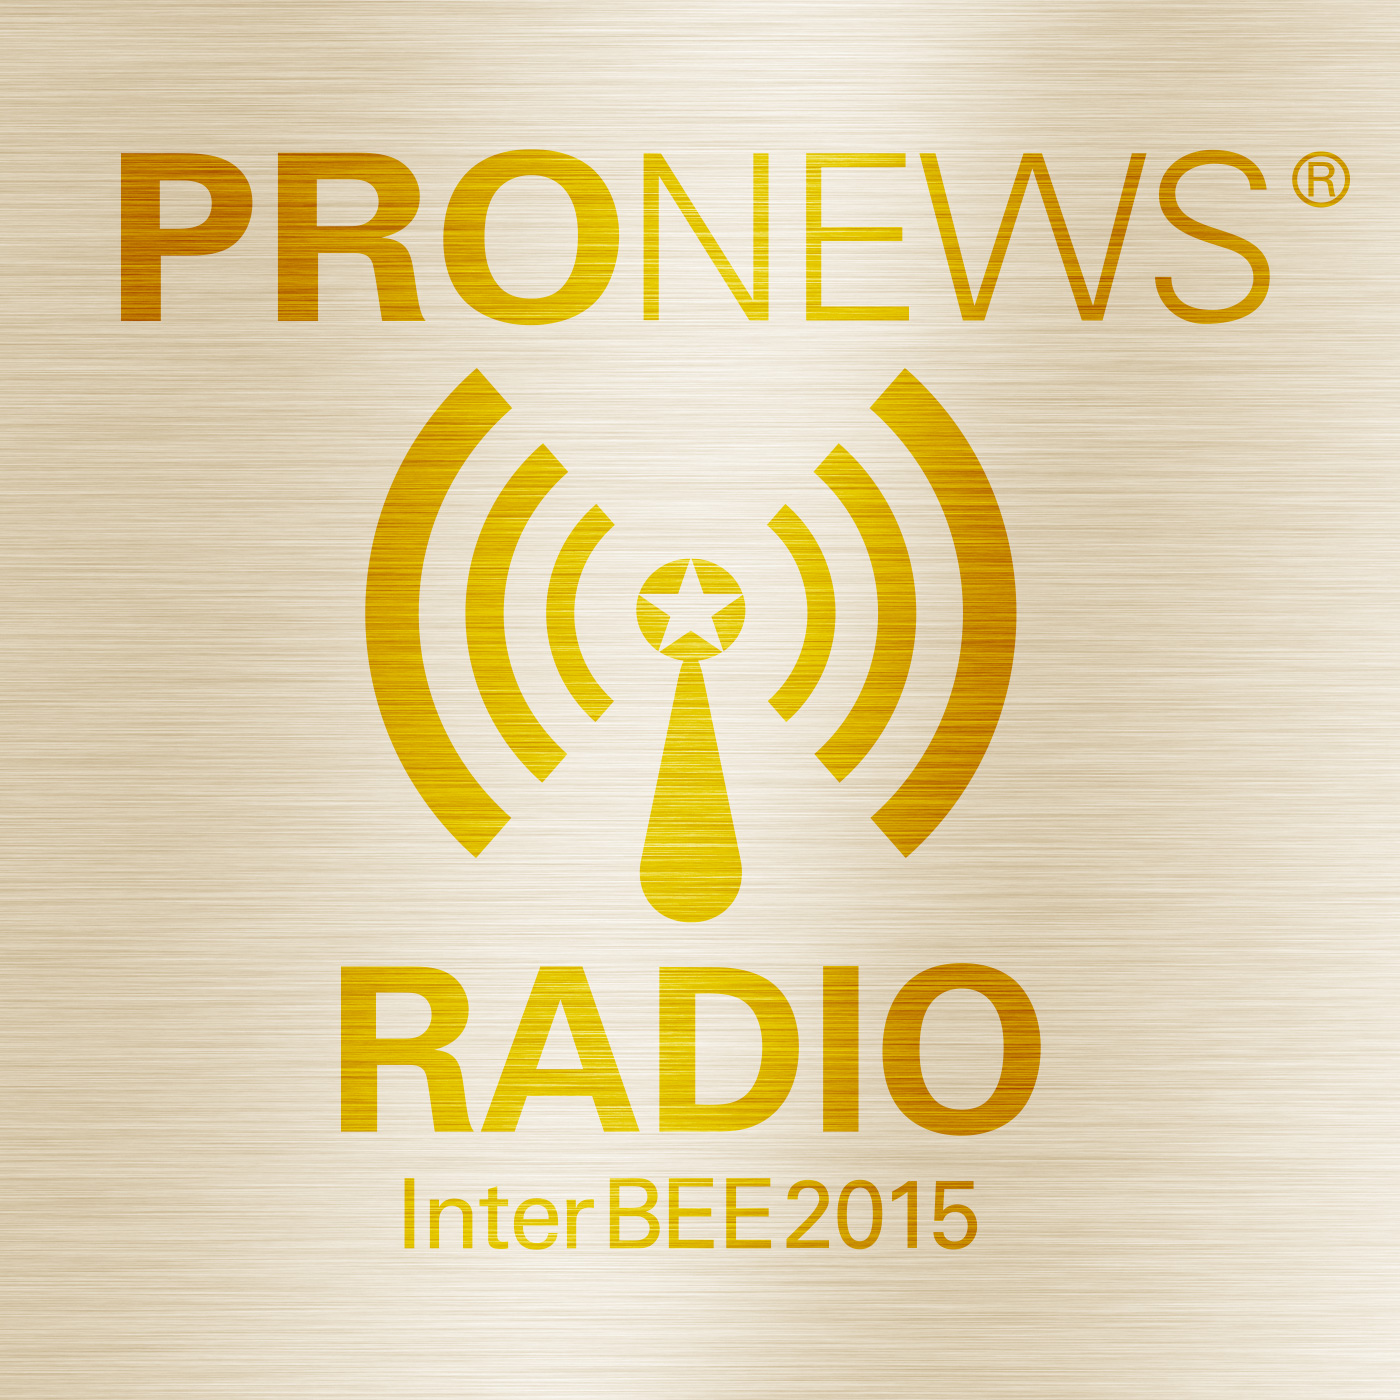 PRONEWS Radio@InterBEE2015